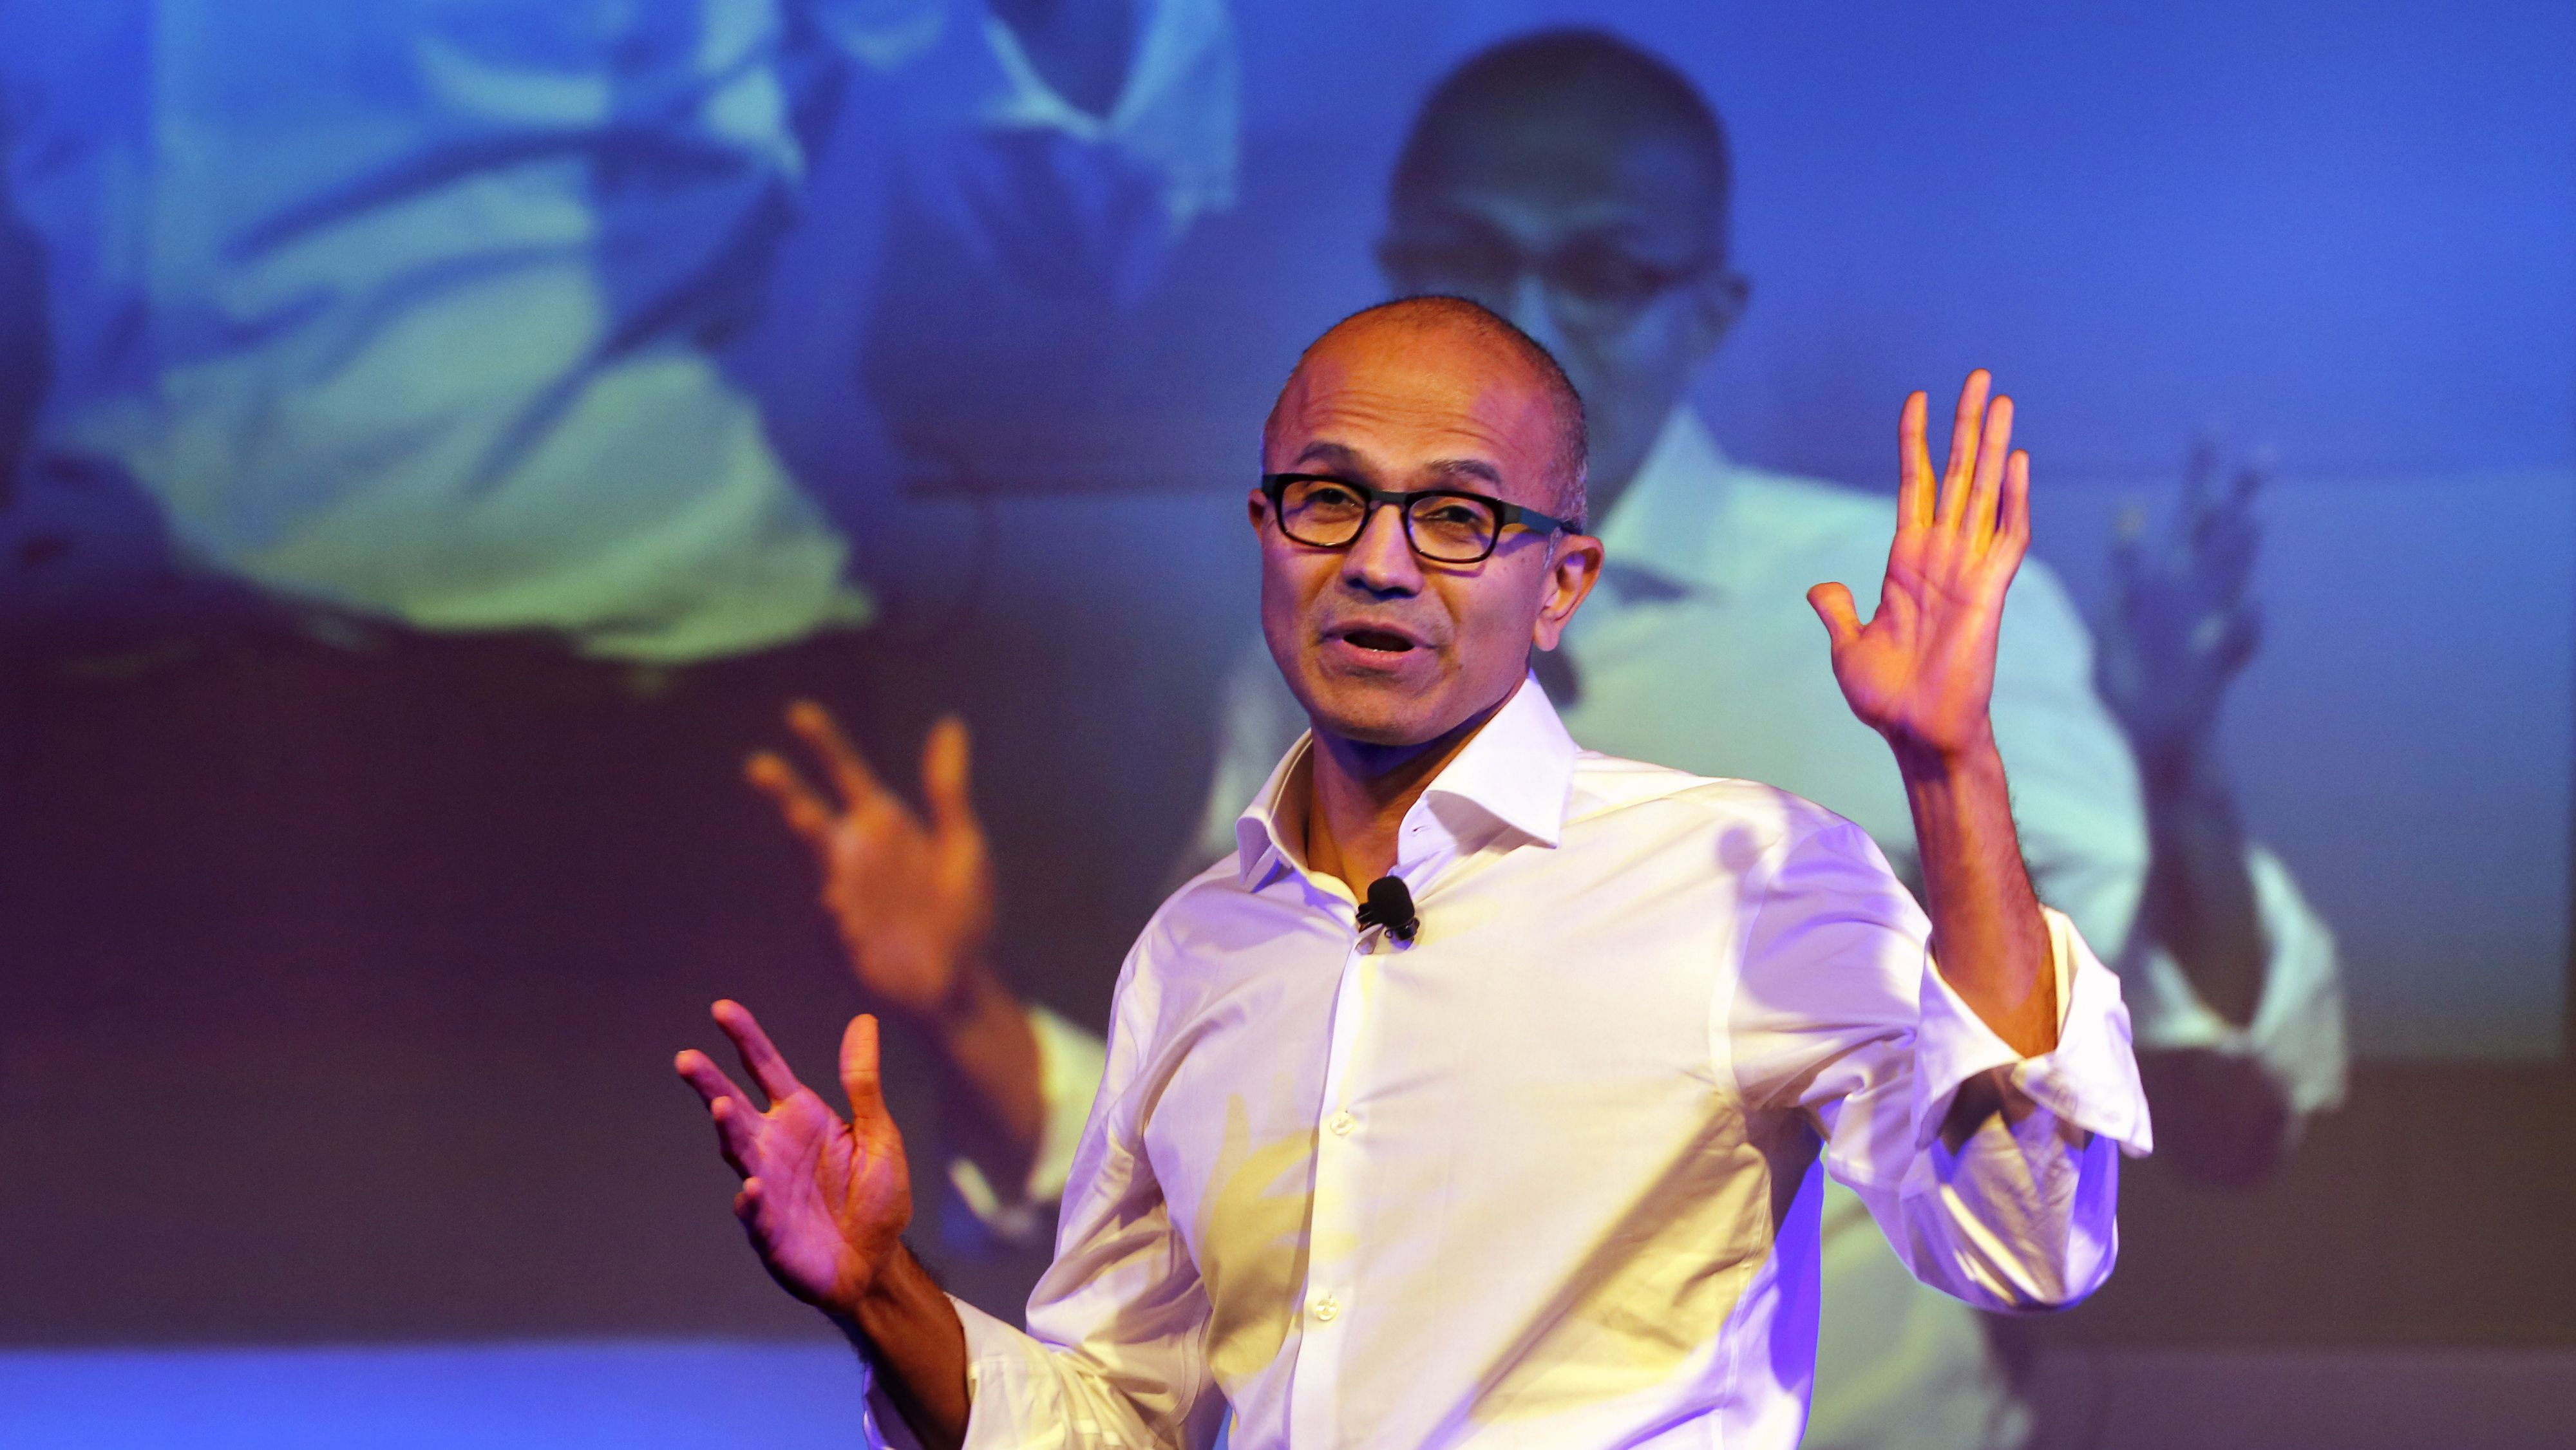 In this Tuesday, Sept. 30, 2014 file photo, Microsoft Chief Executive Officer Satya Nadella speaks to students in New Delhi. On Thursday, Oct. 9, 2014, Nadella spoke at an event for women in computing held in Phoenix, saying women don't need to ask for a raise. They should just trust the system. He was asked to give his advice to women who are uncomfortable requesting a raise. (AP Photo/Manish Swarup)